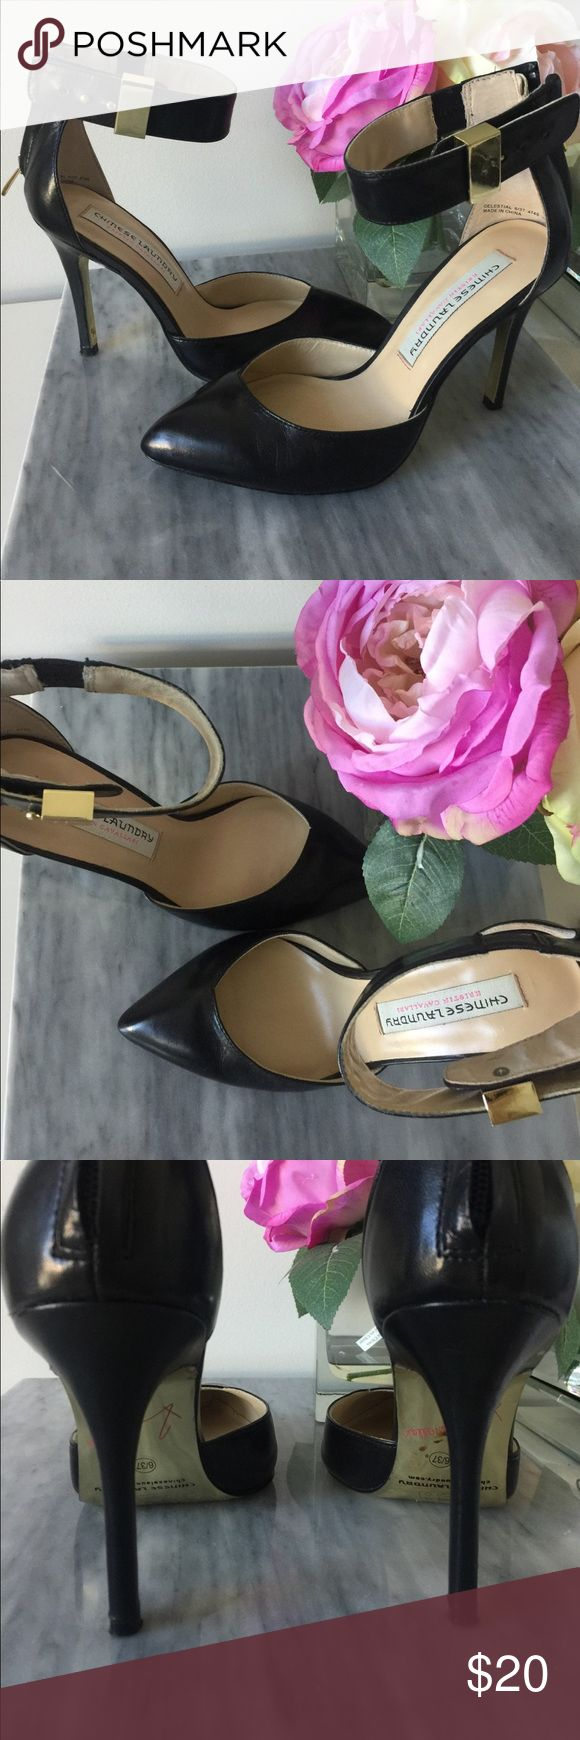 Chinese Laundry Kristin Cavallari heels 6 Size 6, worn once. Very good condition- please see photos. Wear to bottom of soles. Gold soles and gold hardware. Adjustable ankle strap and true to size. Chinese Laundry Shoes Heels